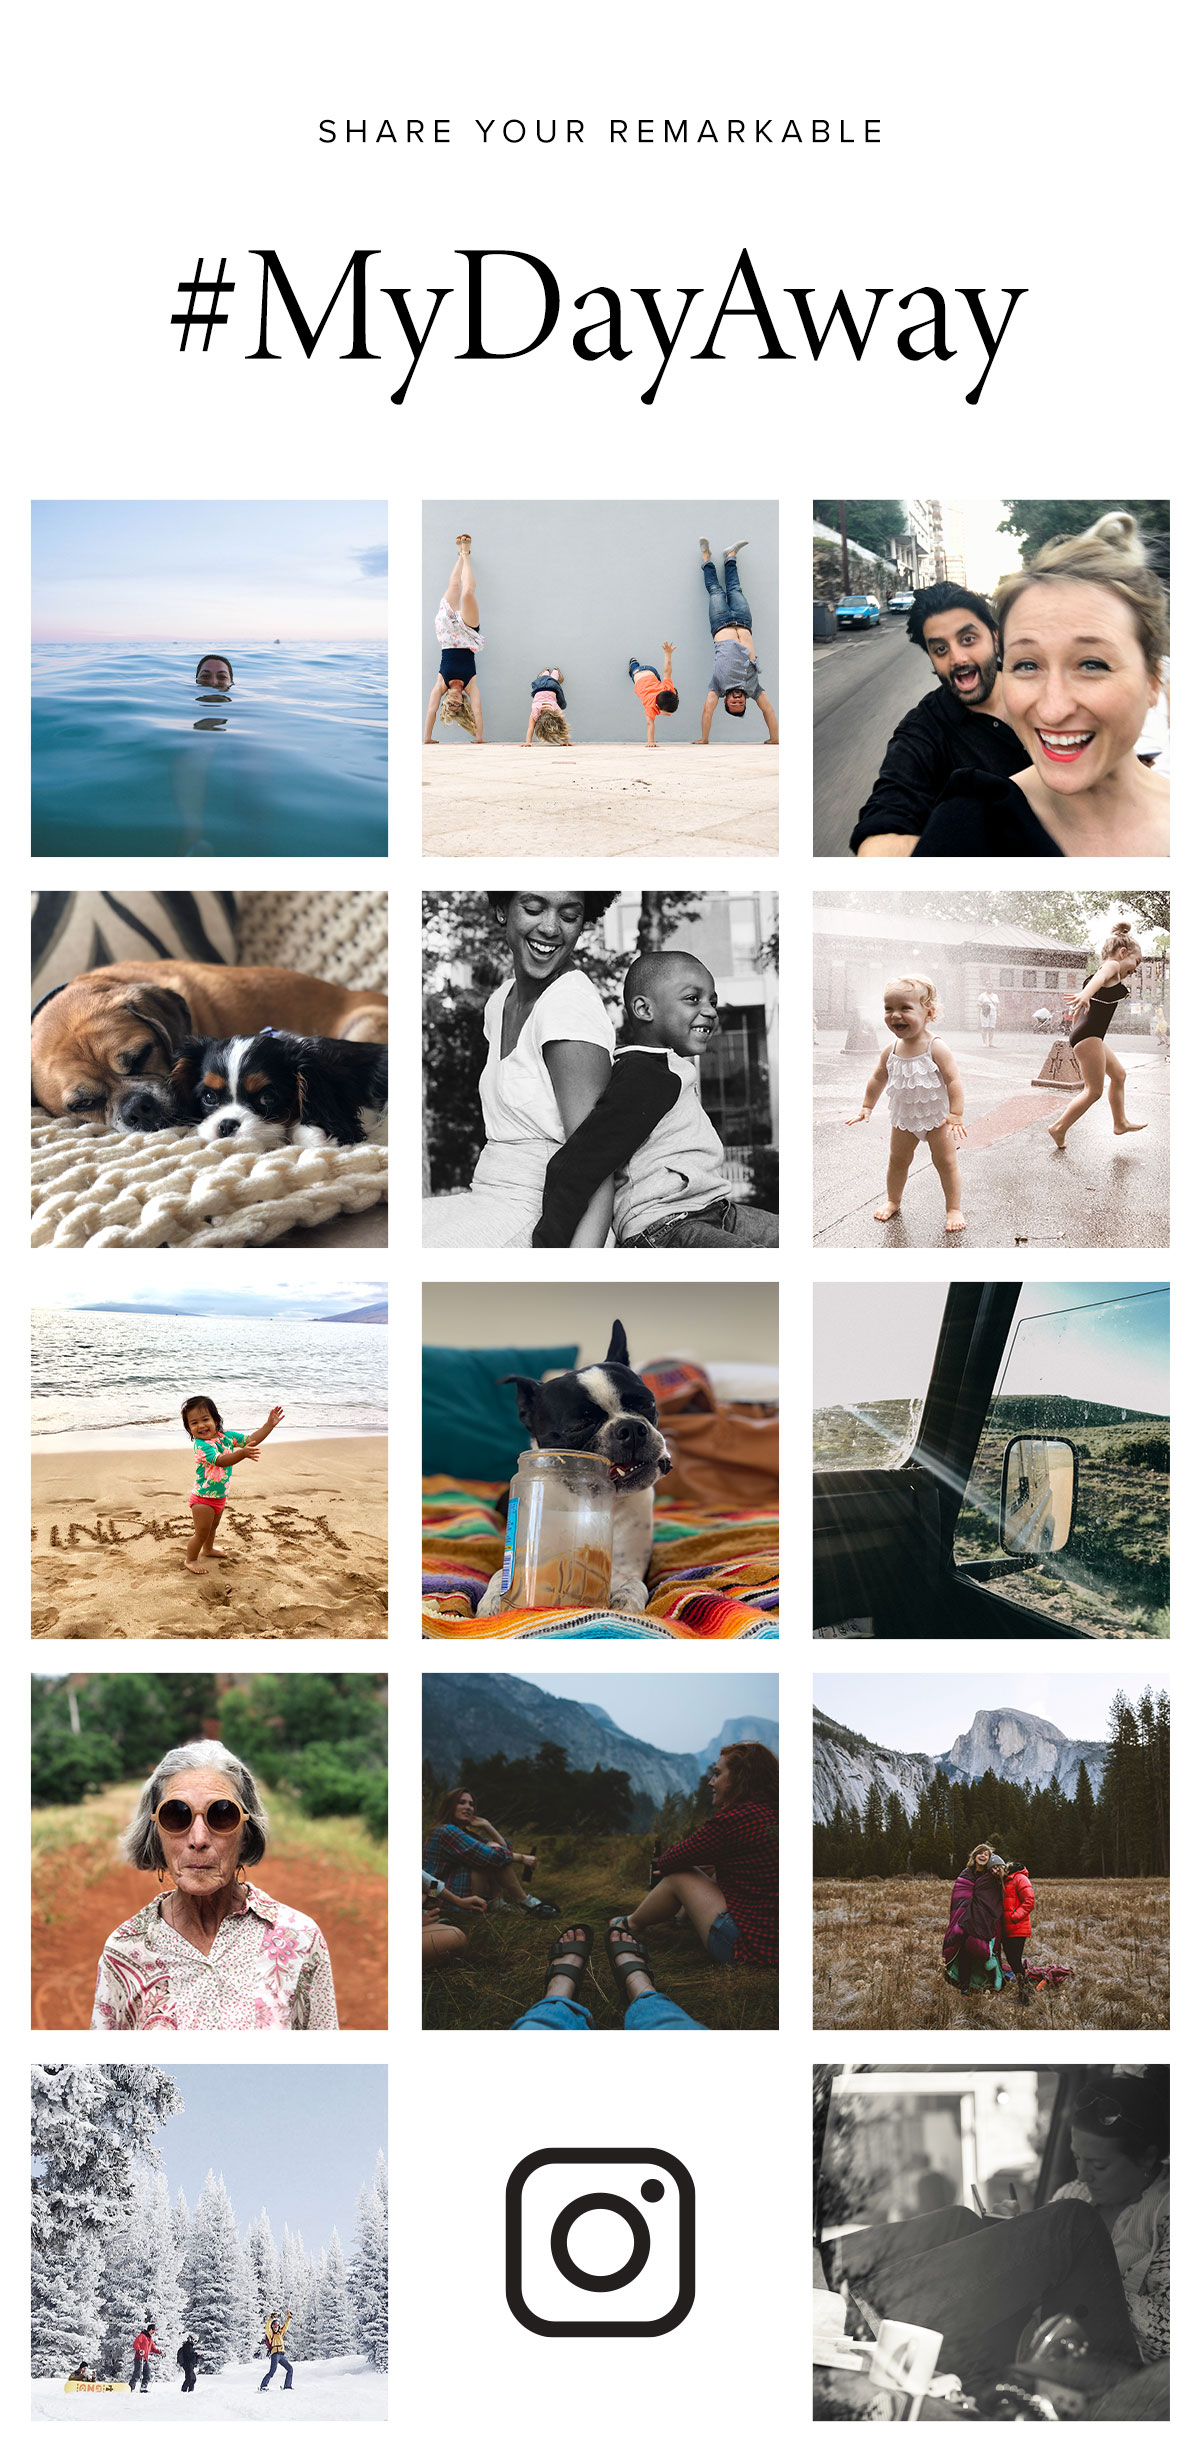 Share your day away with #mydayaway on Instagram